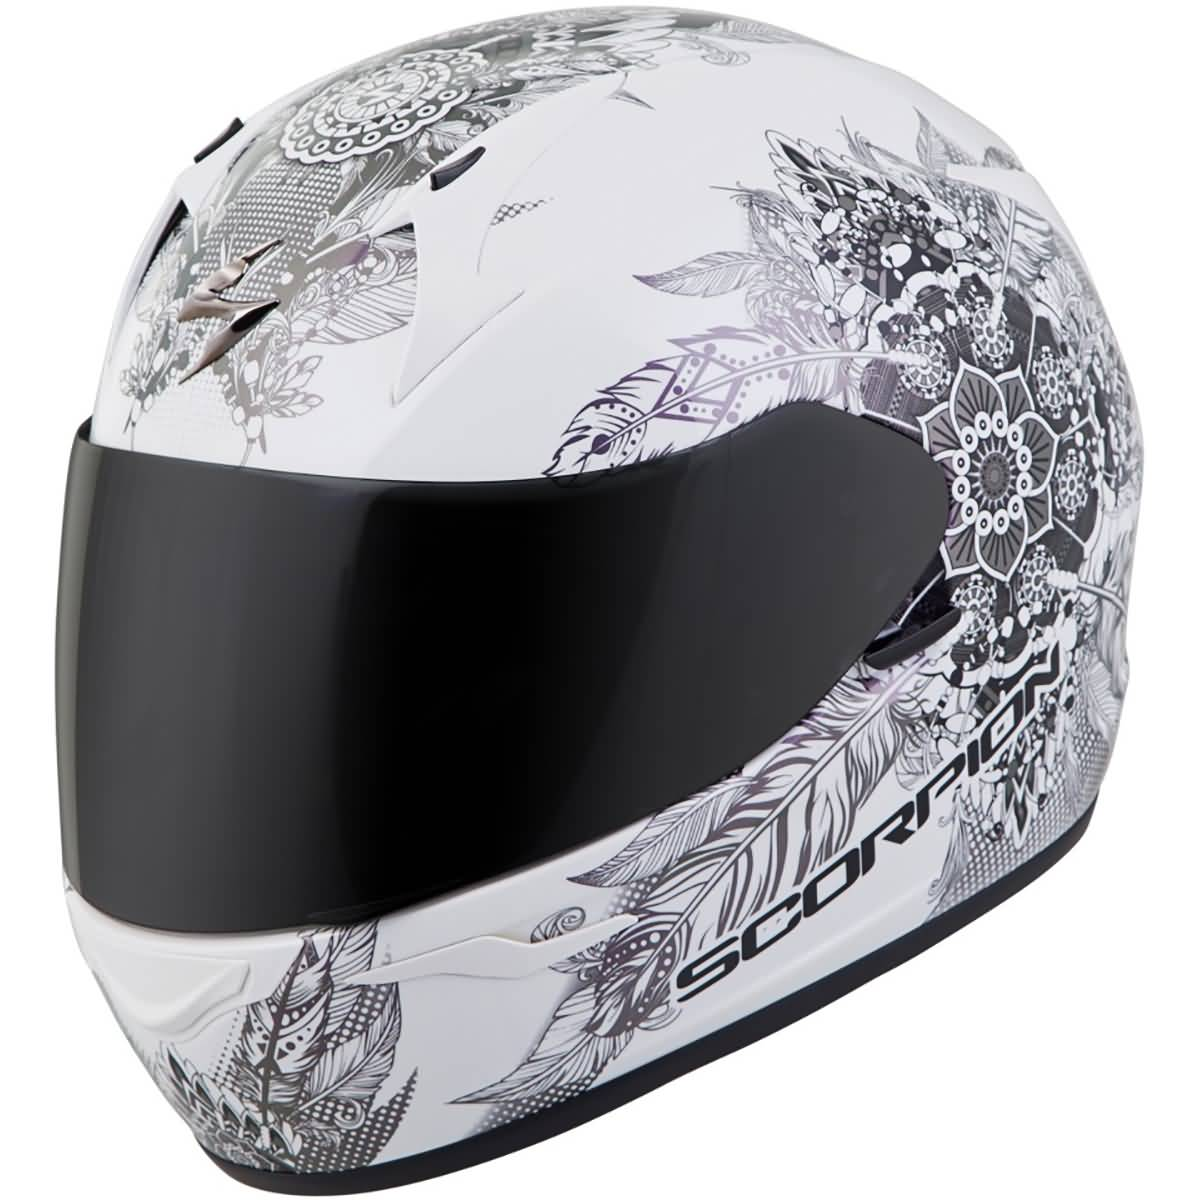 Scorpion EXO-R320 Dream Adult Street Helmets-75-1148